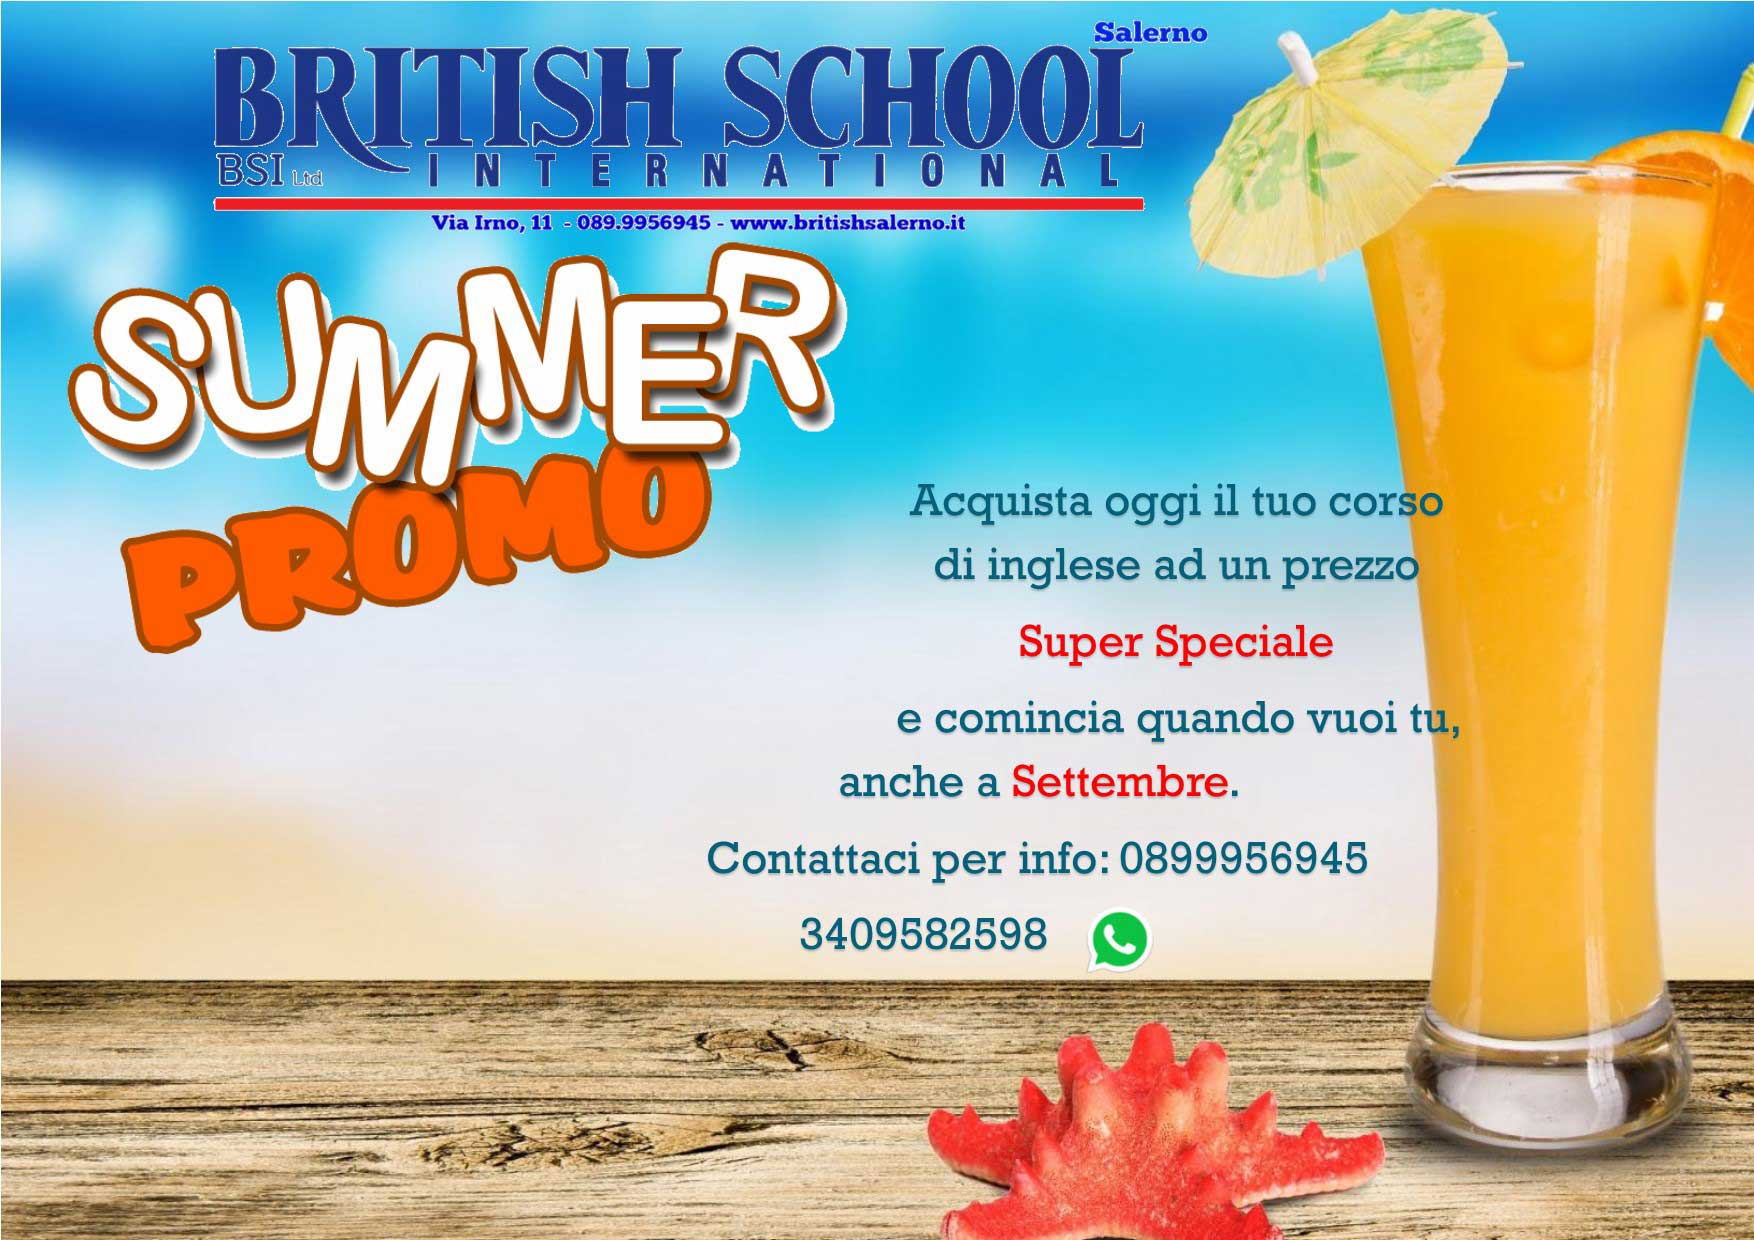 summer promo 2017 della british school salerno